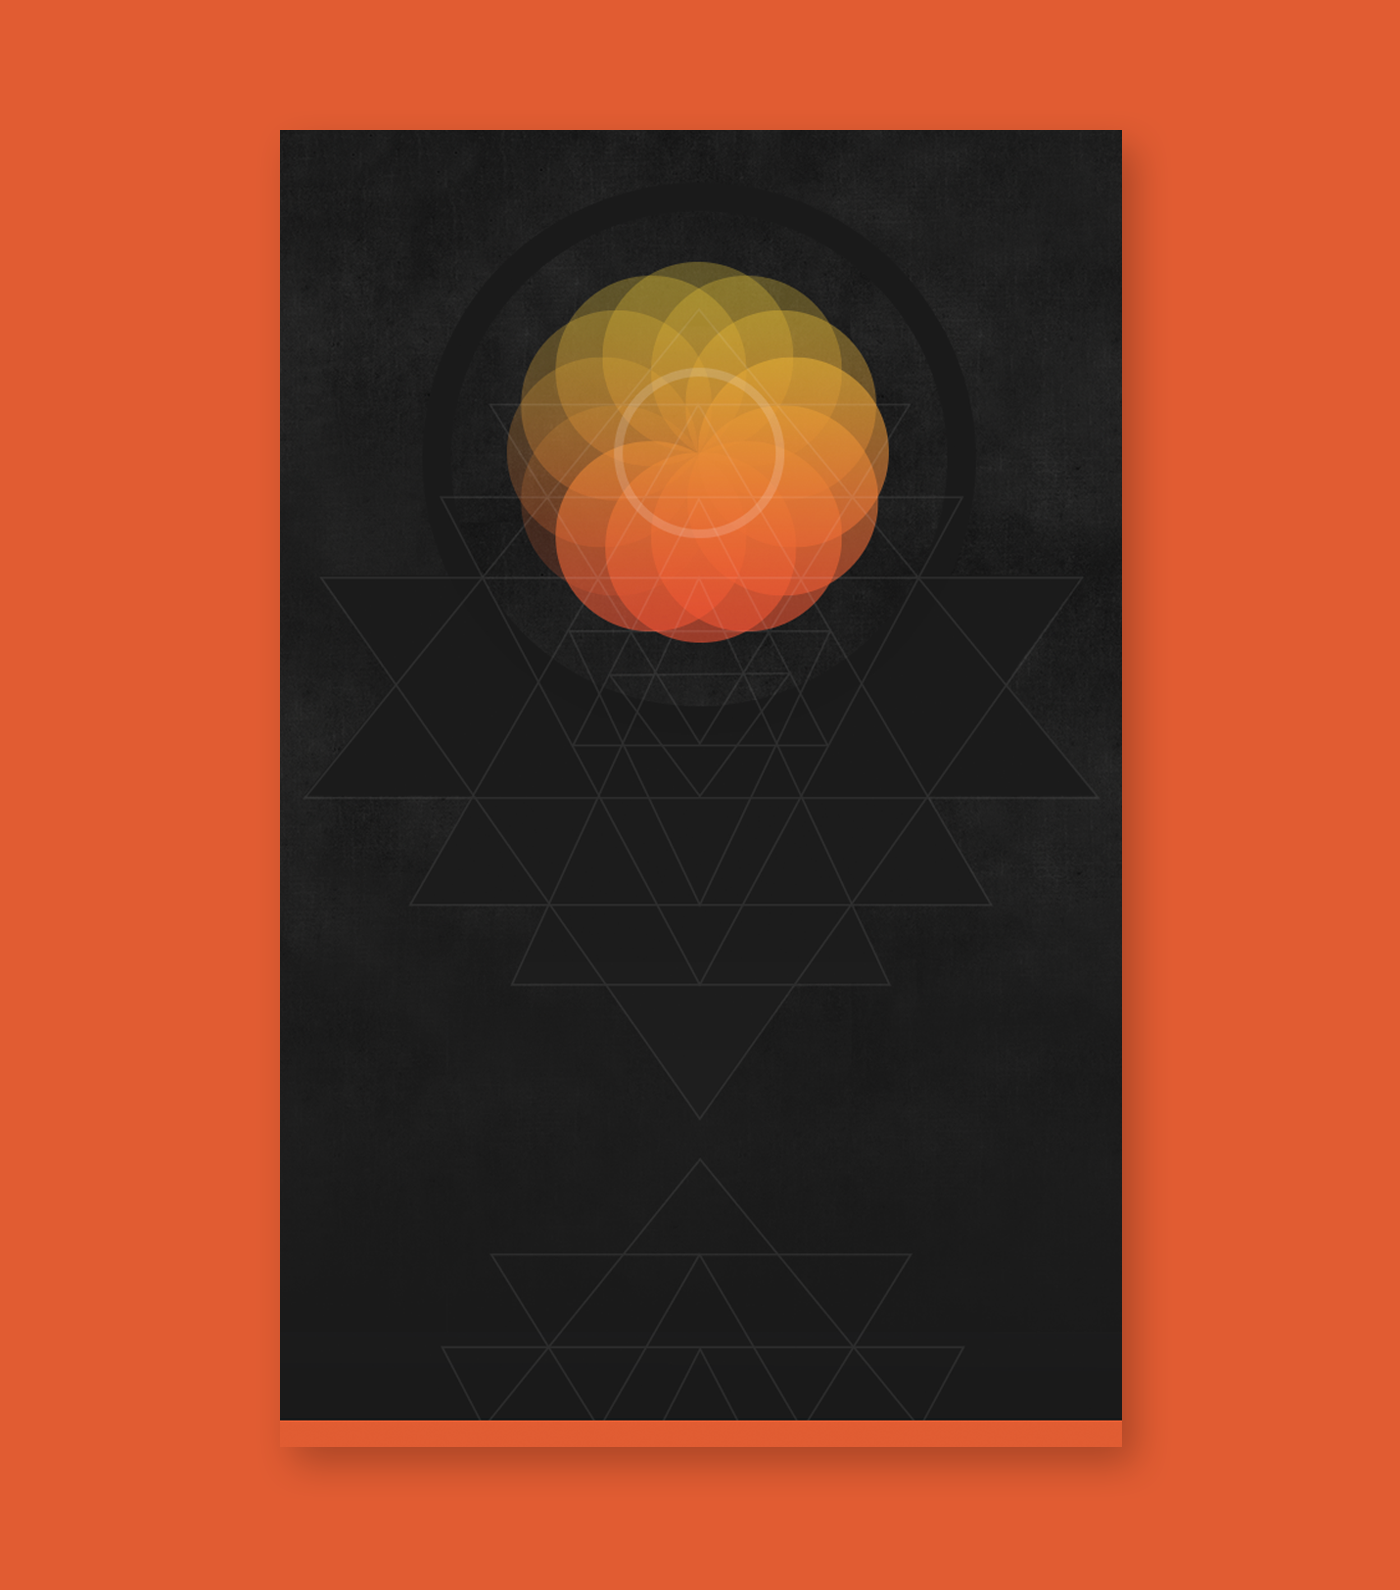 poster_poster03.png